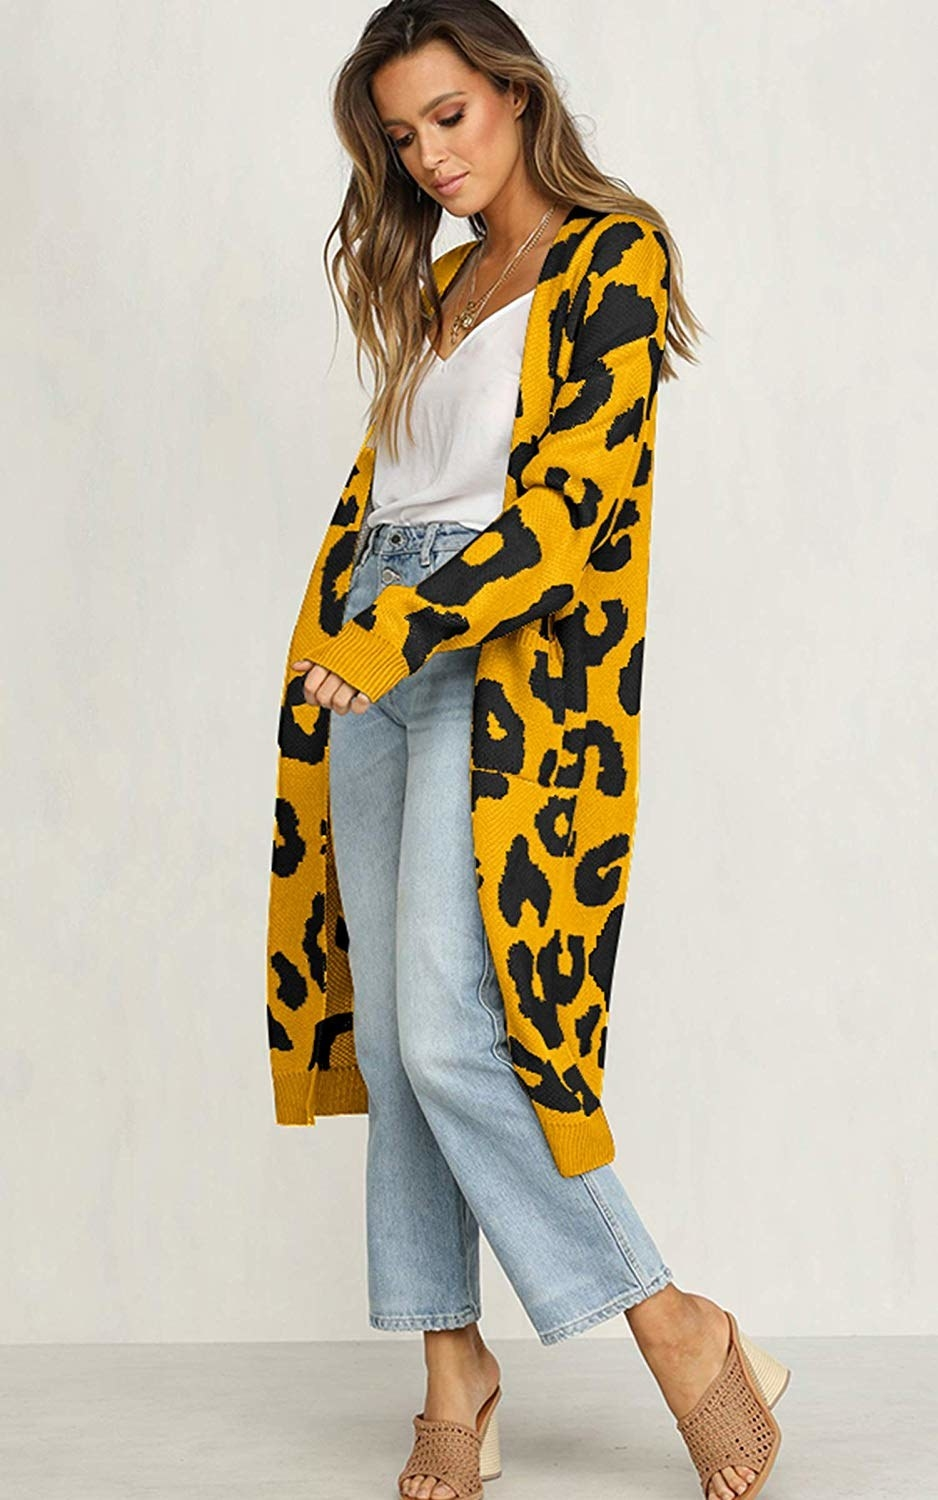 model wears cardigan with oversized leopard print